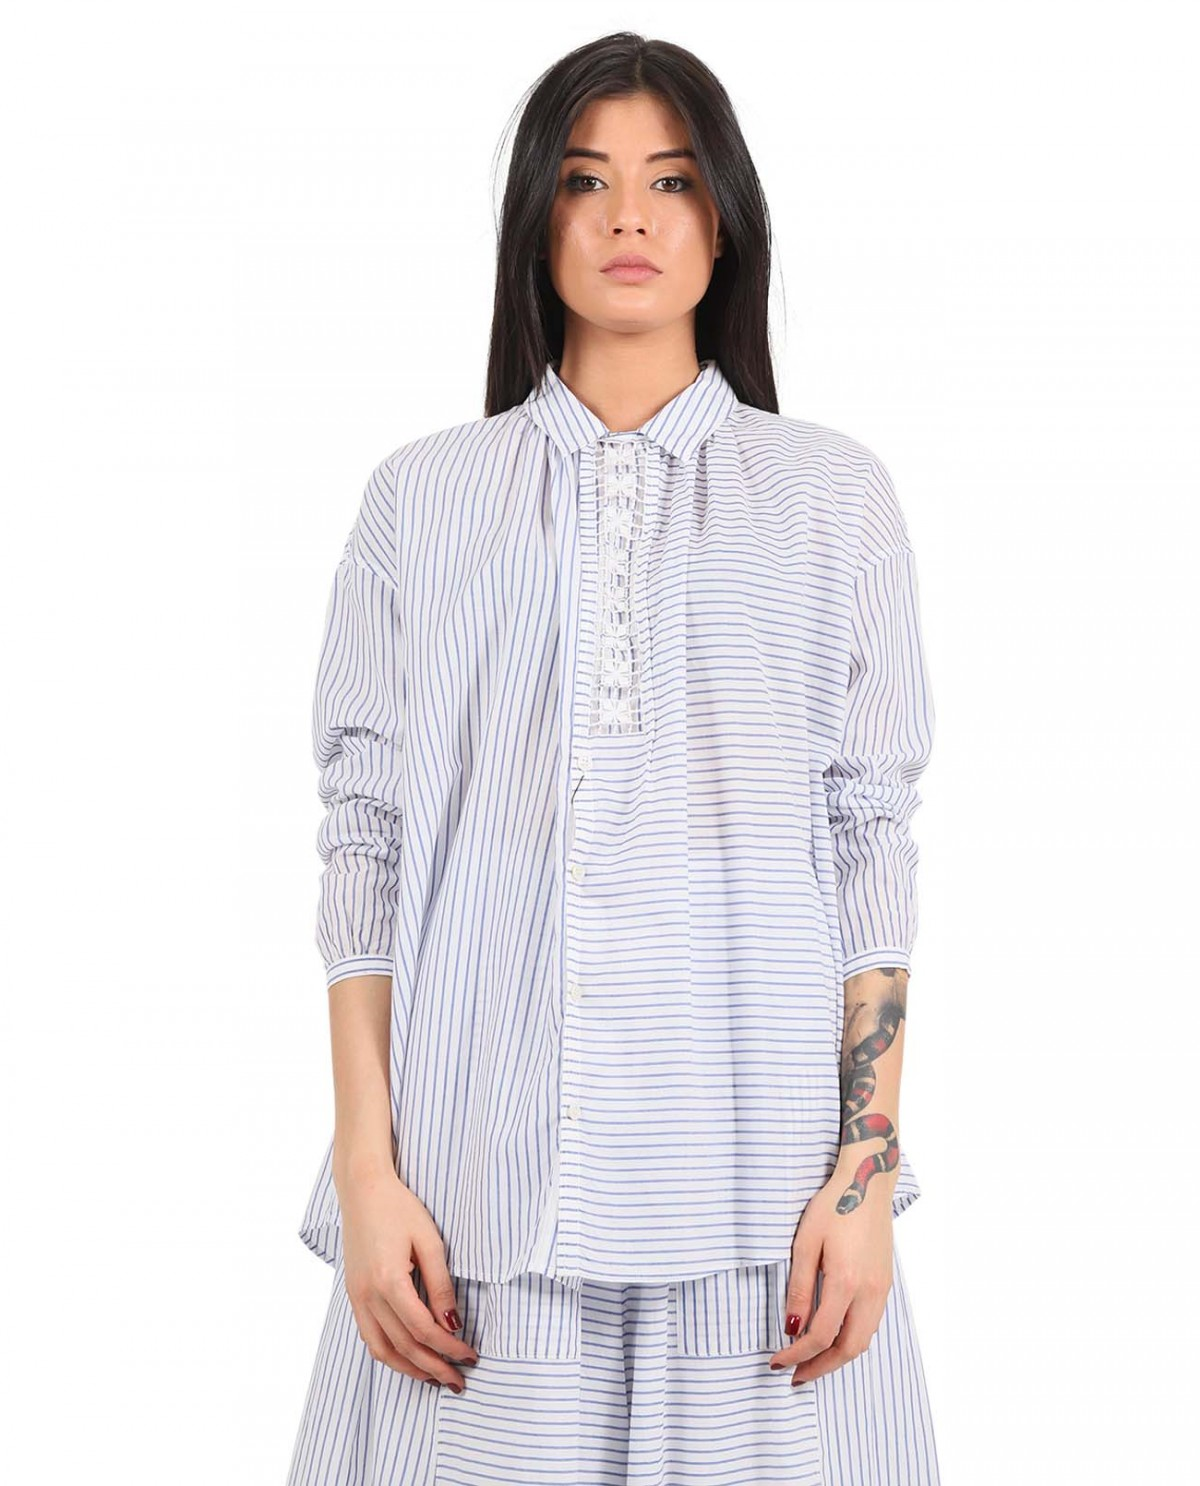 Zucca striped shirt with embroidery